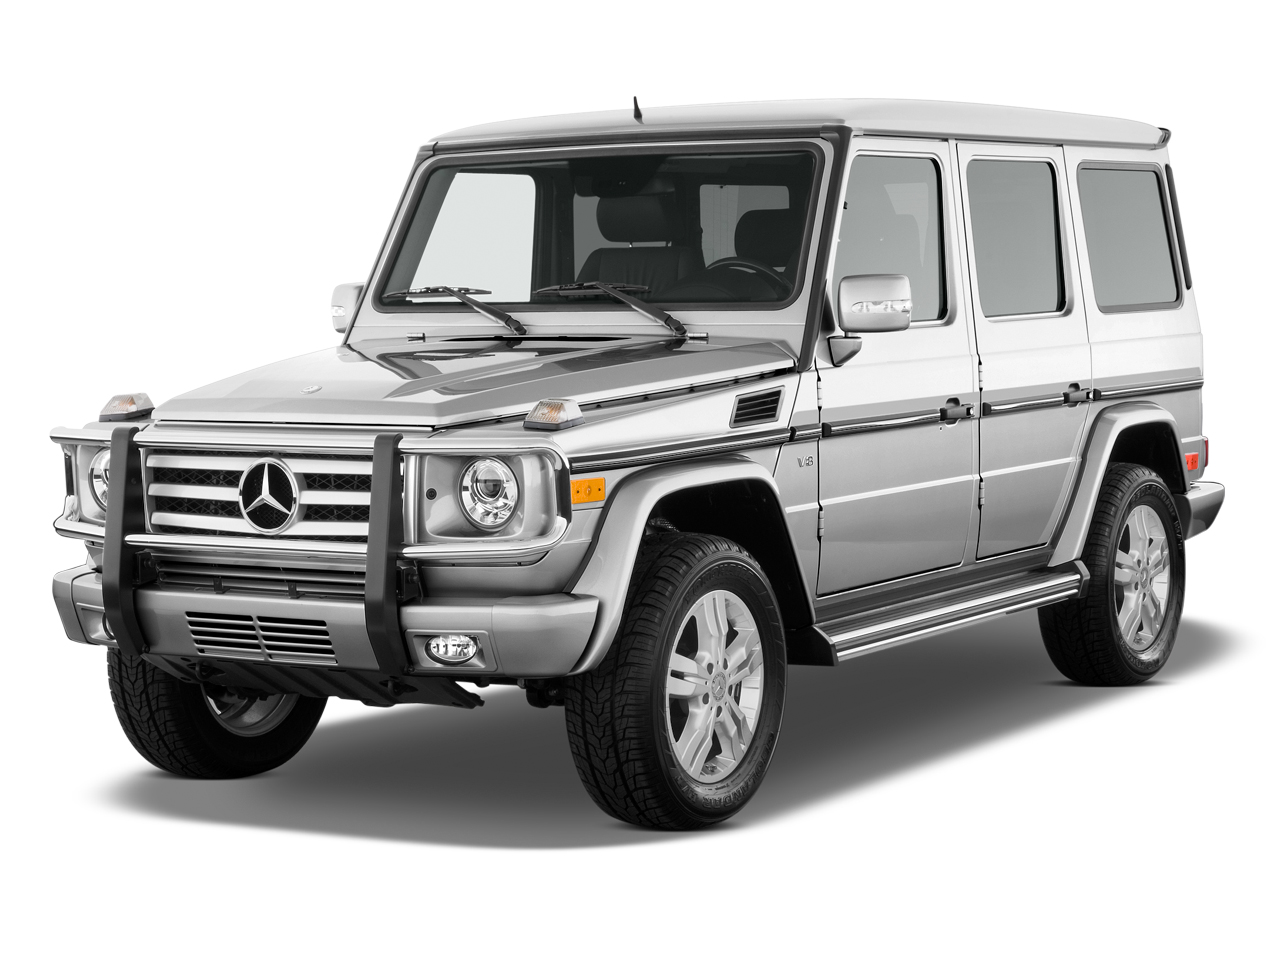 2010 mercedes benz g class review ratings specs prices for Mercedes benz g class 2010 for sale